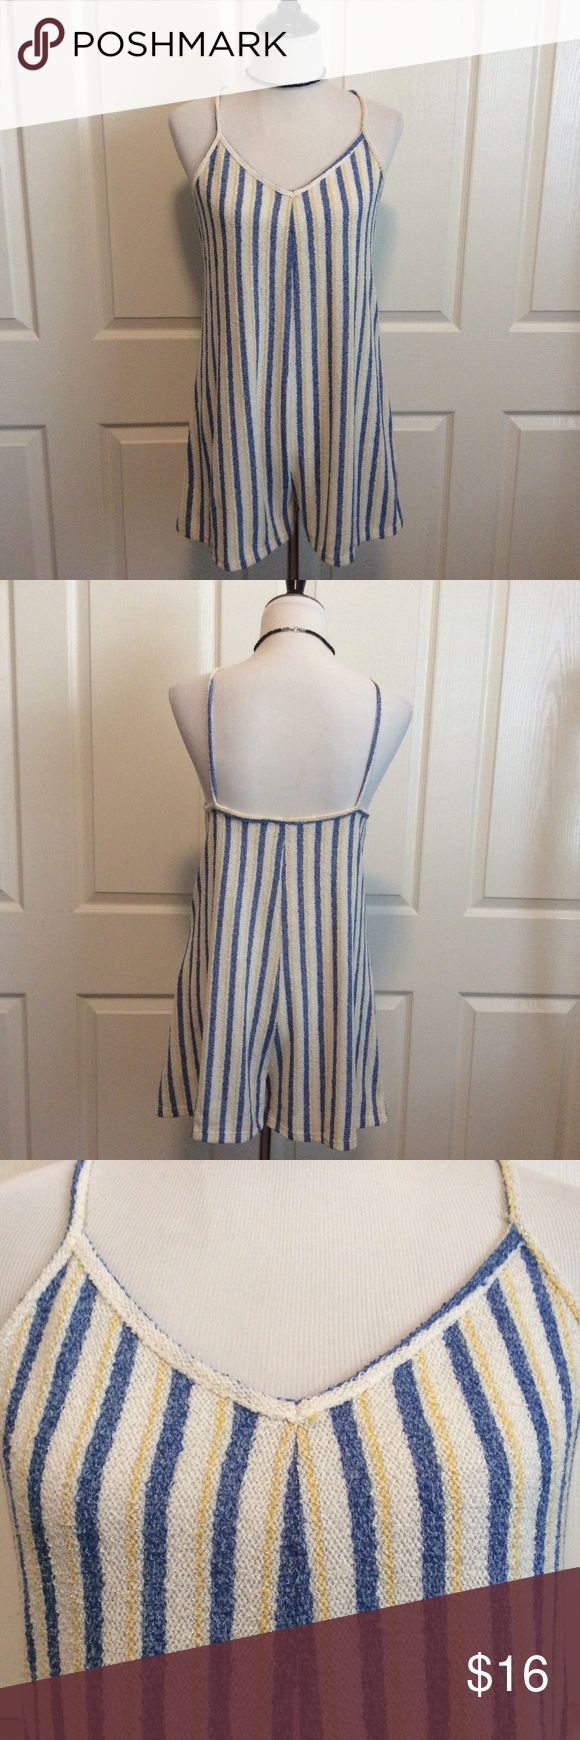 Beachy Striped Romper Blue, white and yellow striped romper. Understated metallic thread detail. NWT. 48%Poly, 39%Cotton, 11%Acrylic. Perfect throw on over a swimsuit. Or pair with sandals for the perfect sunny day out and about. Zara Shorts